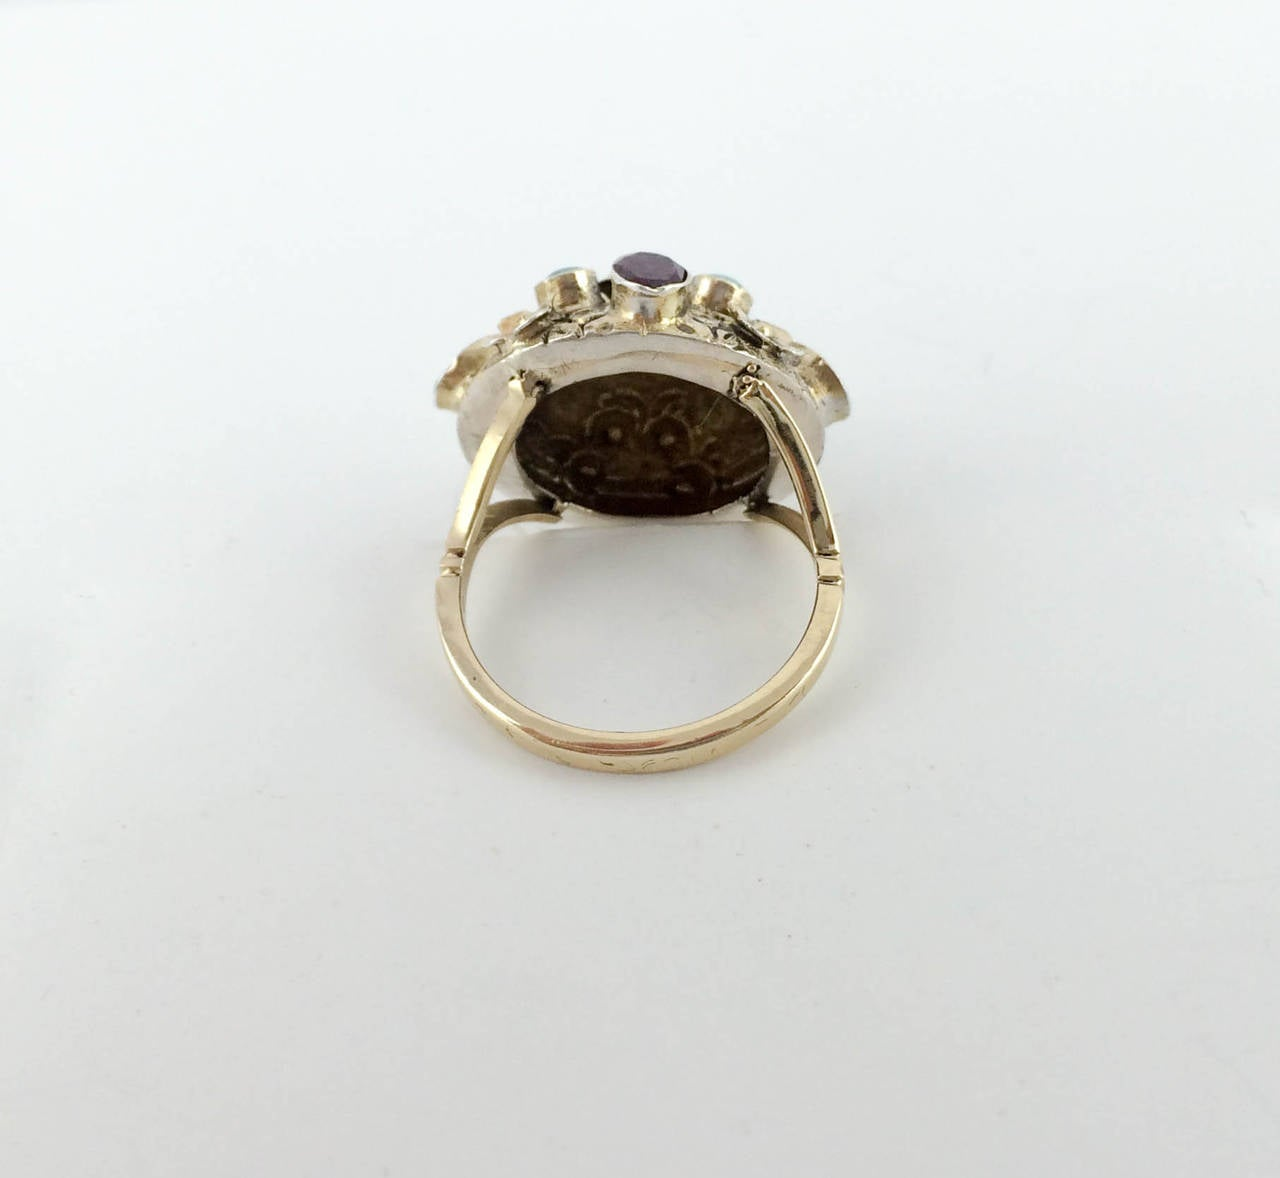 autro hungarian ring 1900s at 1stdibs